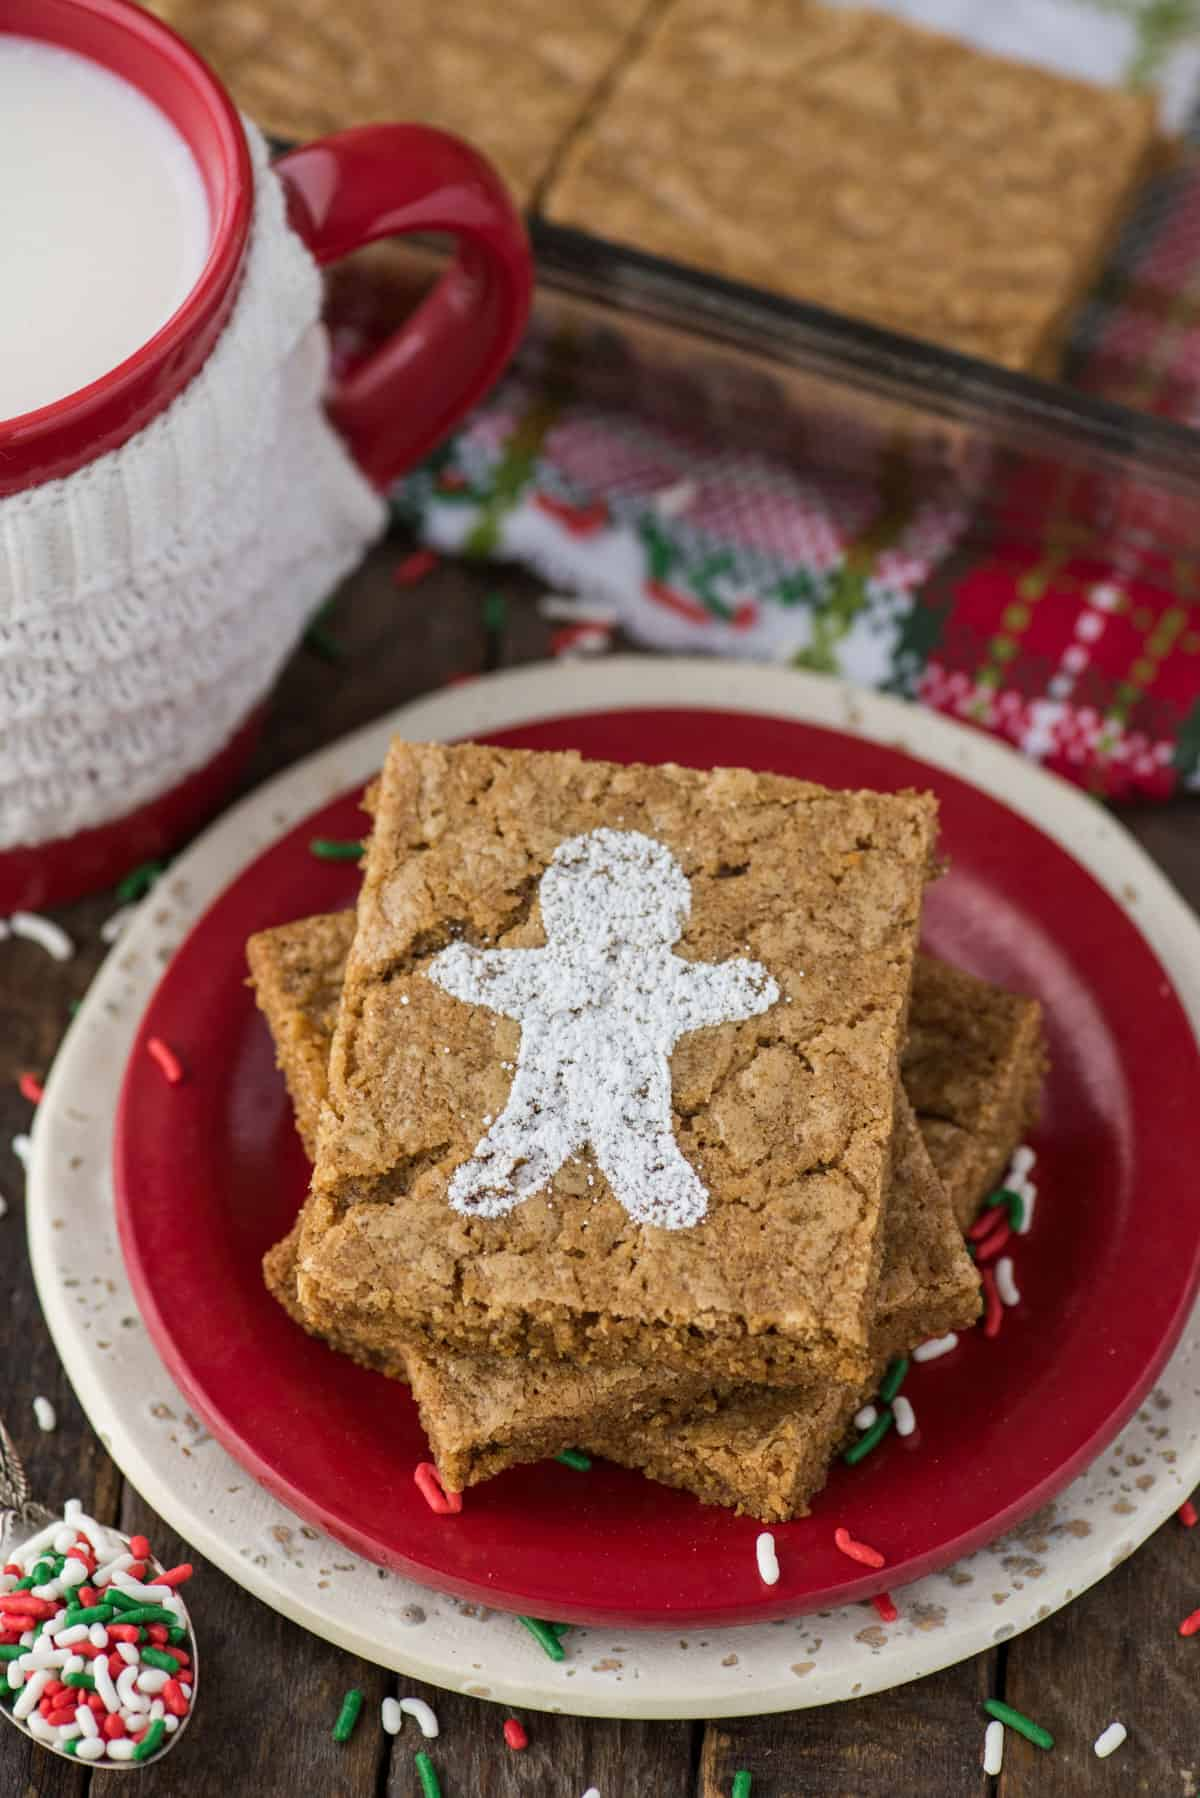 gingerbread brownies dusted with powdered sugar gingerbread men on red plate on wood background